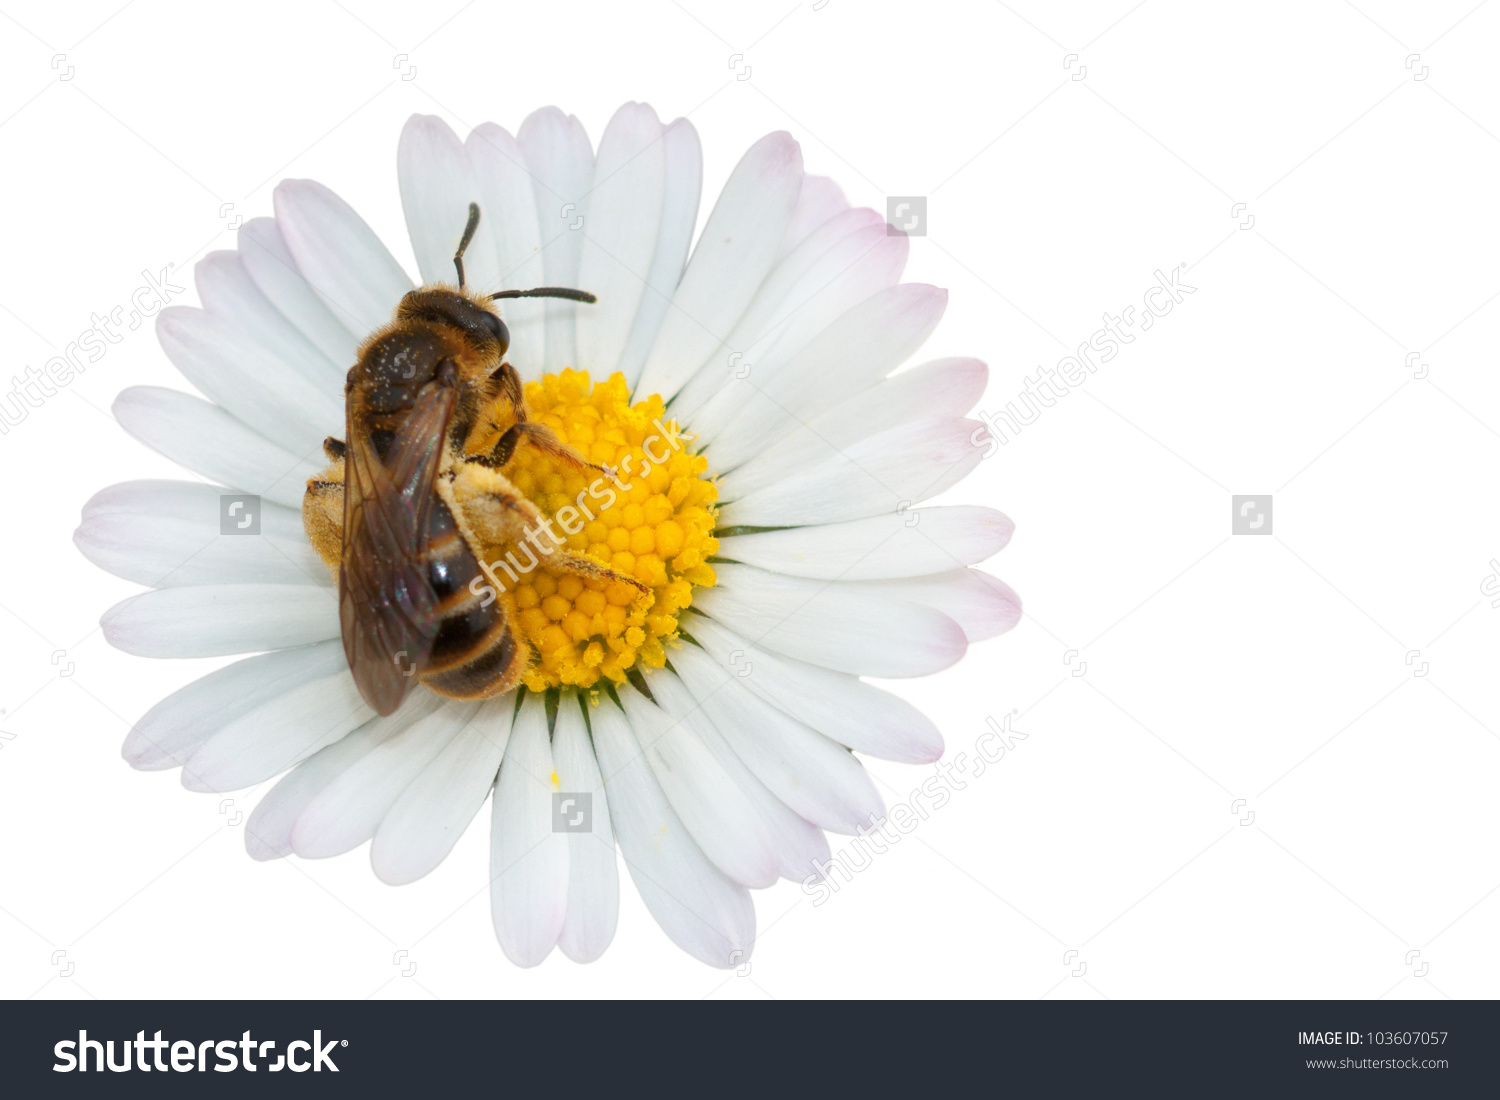 Honey Bee Collecting Nectar On Flower Stock Photo 103607057.